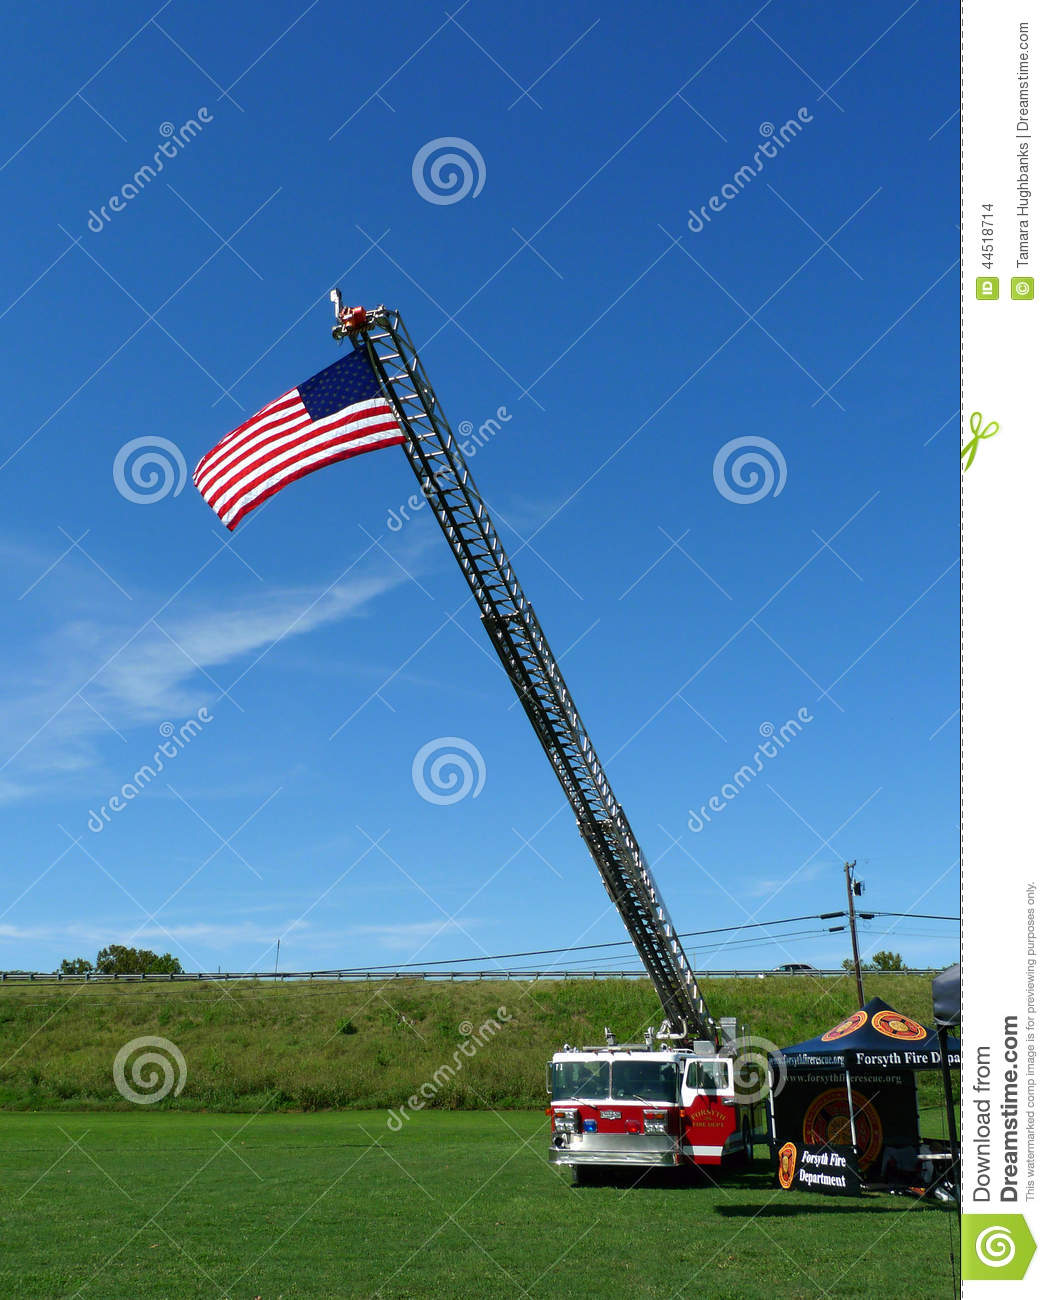 Fire Department Engine with American Flag